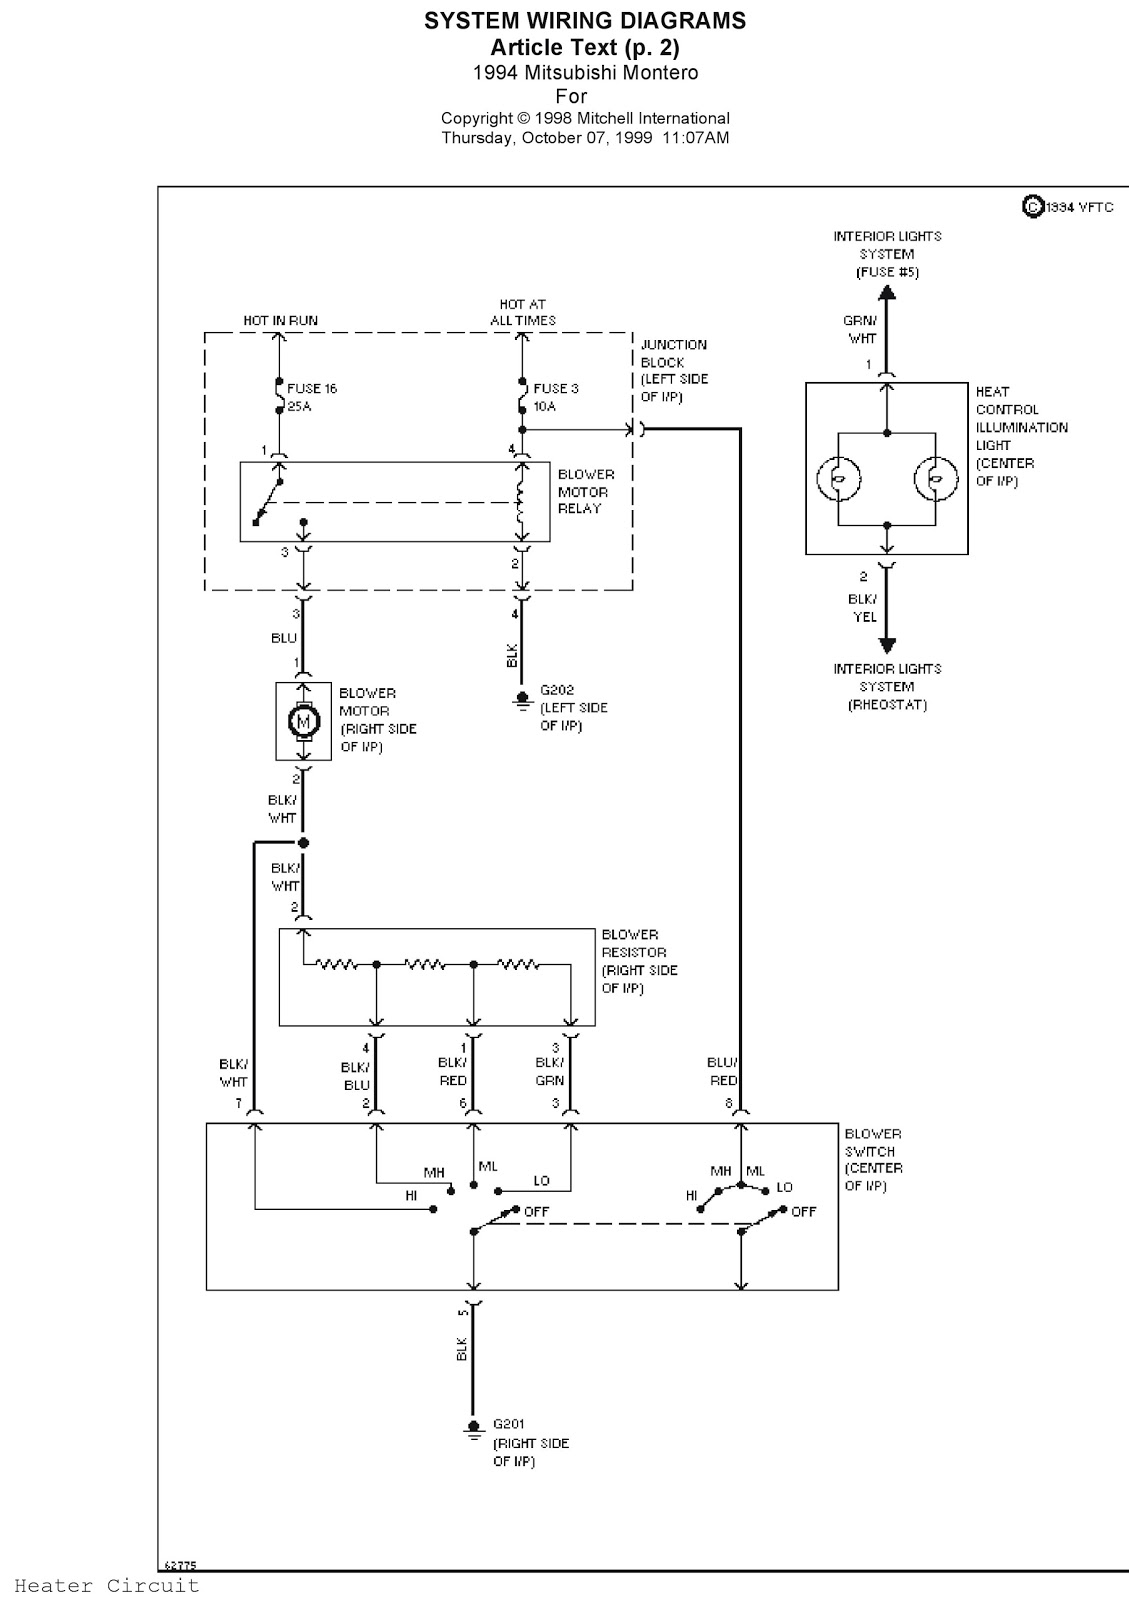 Wiring Diagram For 2002 Mitsubishi Montero Great Design Of Gmc Envoy Radio Wire Sport Get